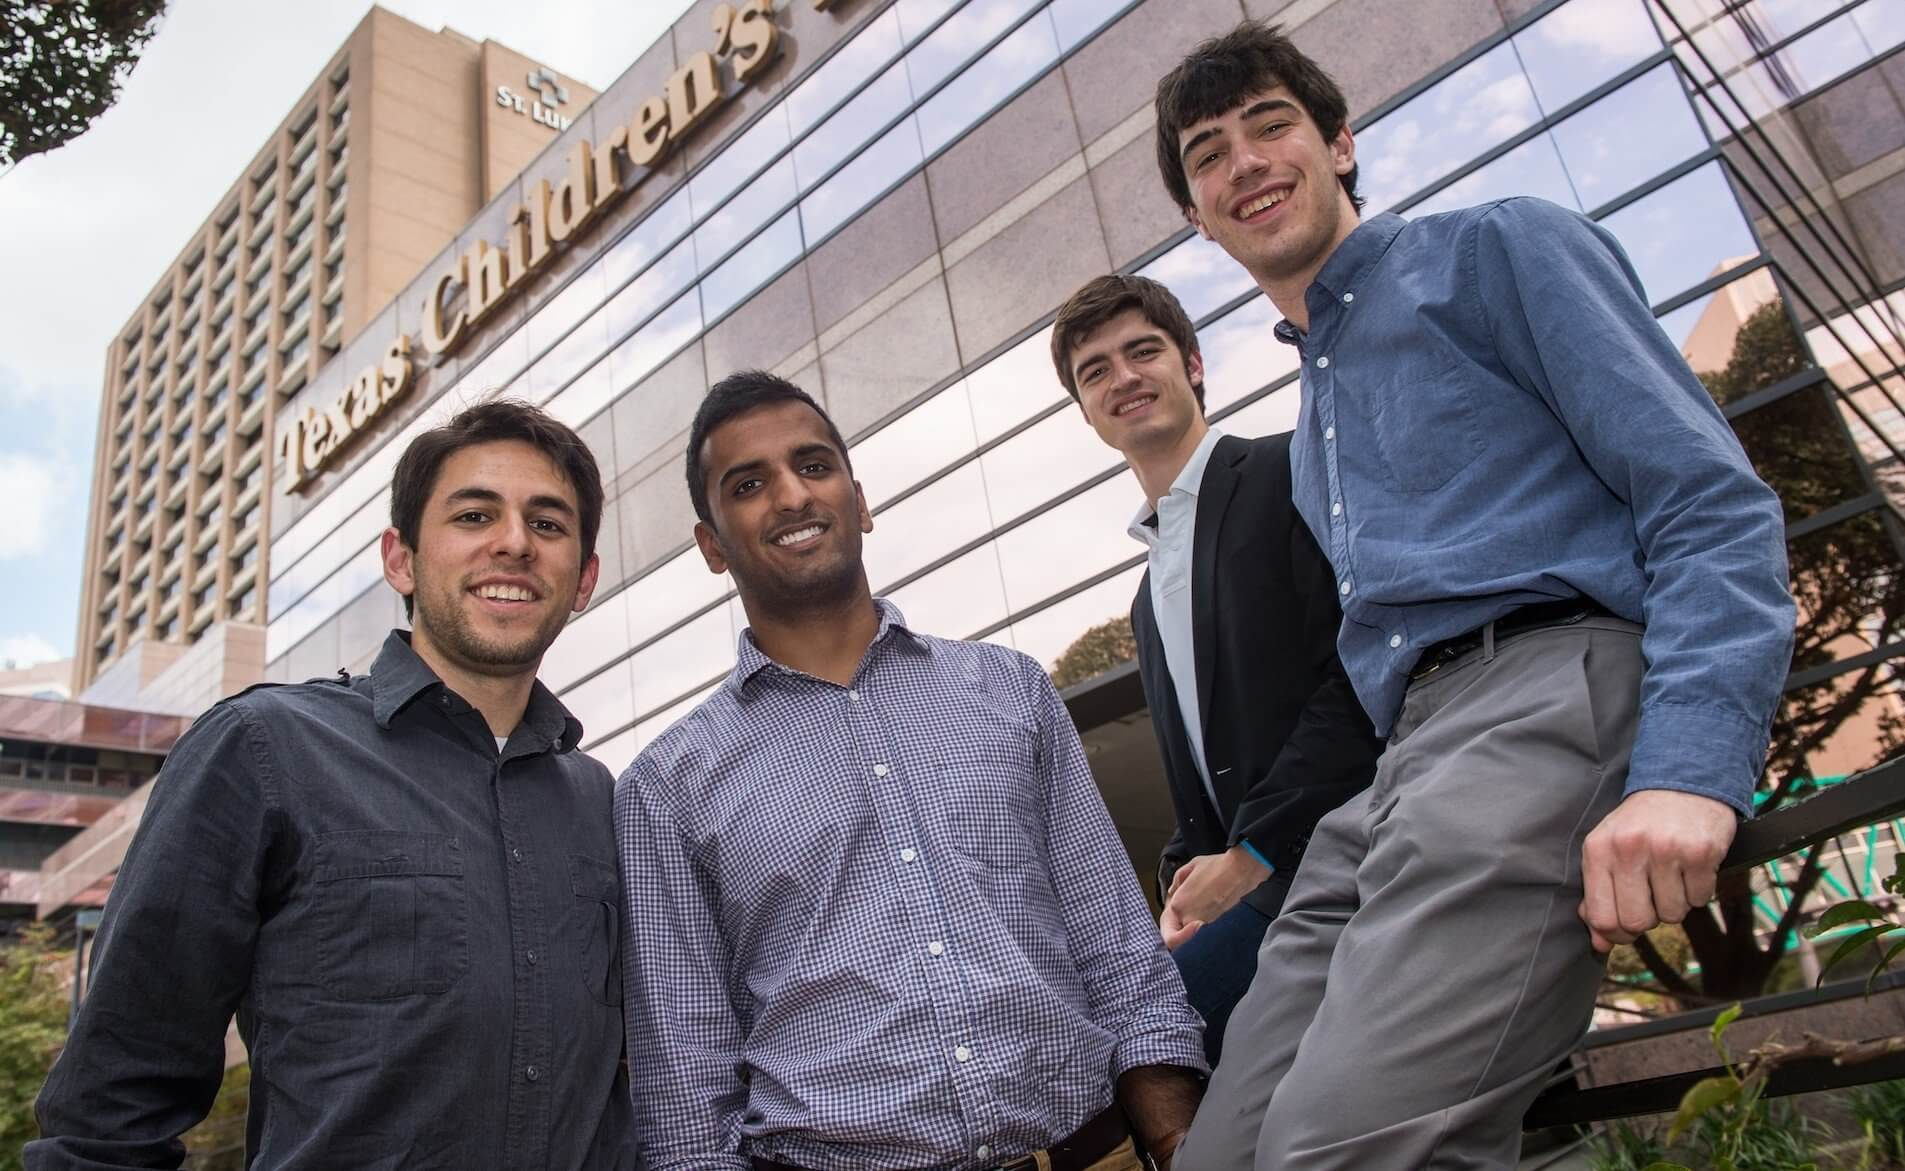 Senior engineering students at Rice University, working with doctors and staff at Texas Children's Hospital, have created a system to assure easy and reliable communications between doctors and ambulance crews. From left: Chase Stewart, Supreeth Mannava, Christopher Buck and Adam Bloom. (Credit: Jeff Fitlow/Rice University)